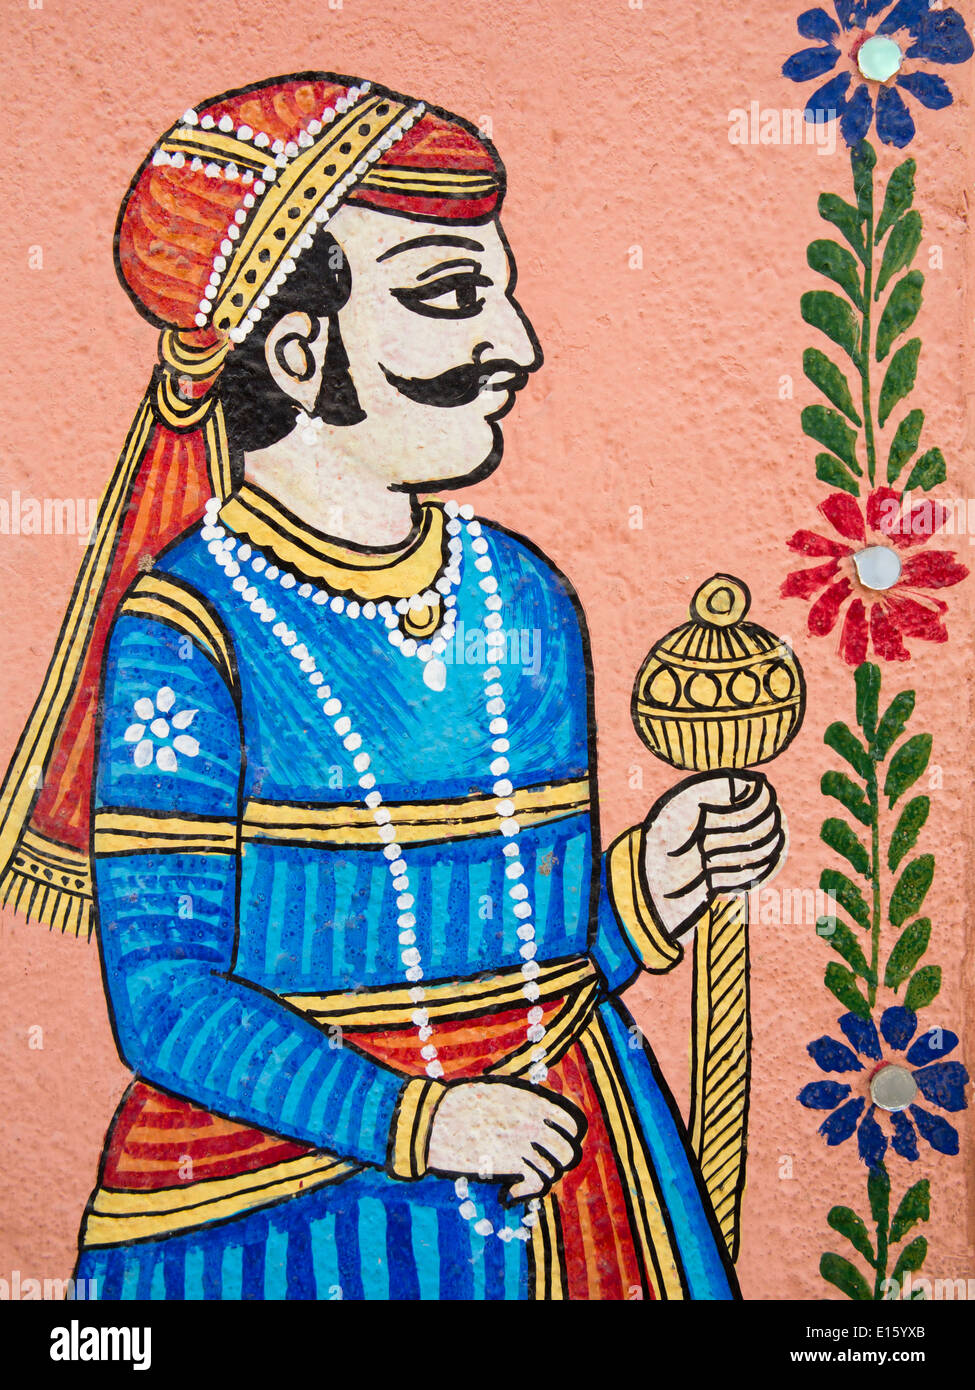 india  rajasthan  udaipur  traditional wall painting of